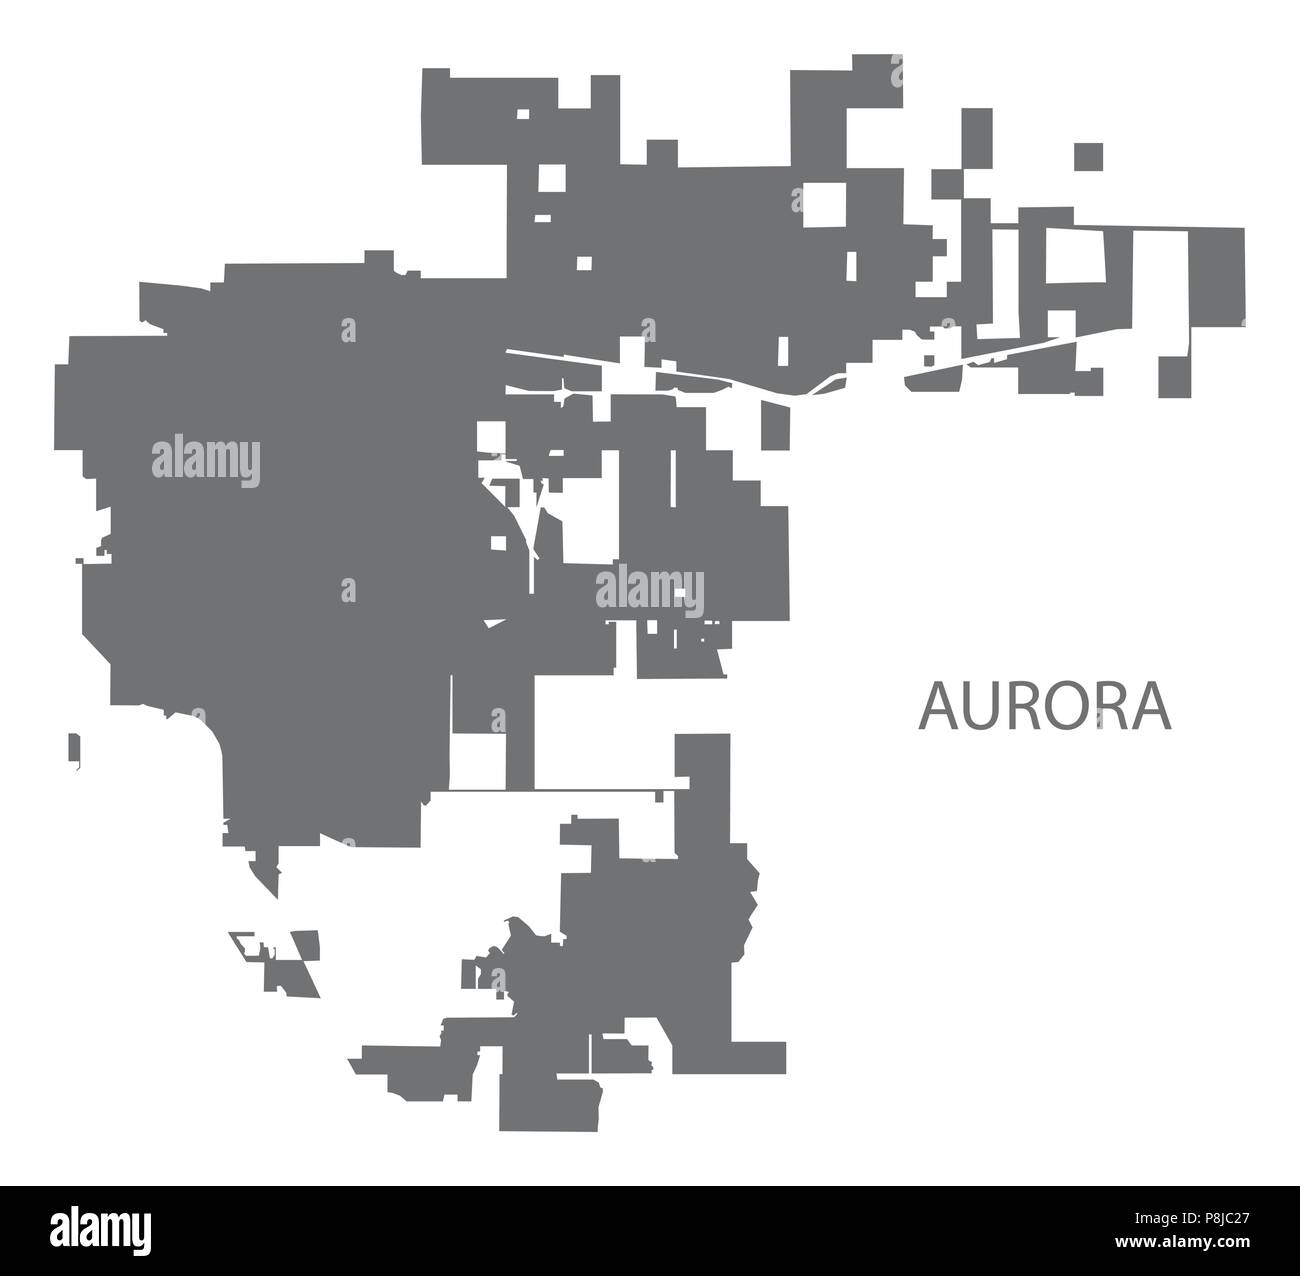 Aurora Colorado city map grey illustration silhouette - Stock Image